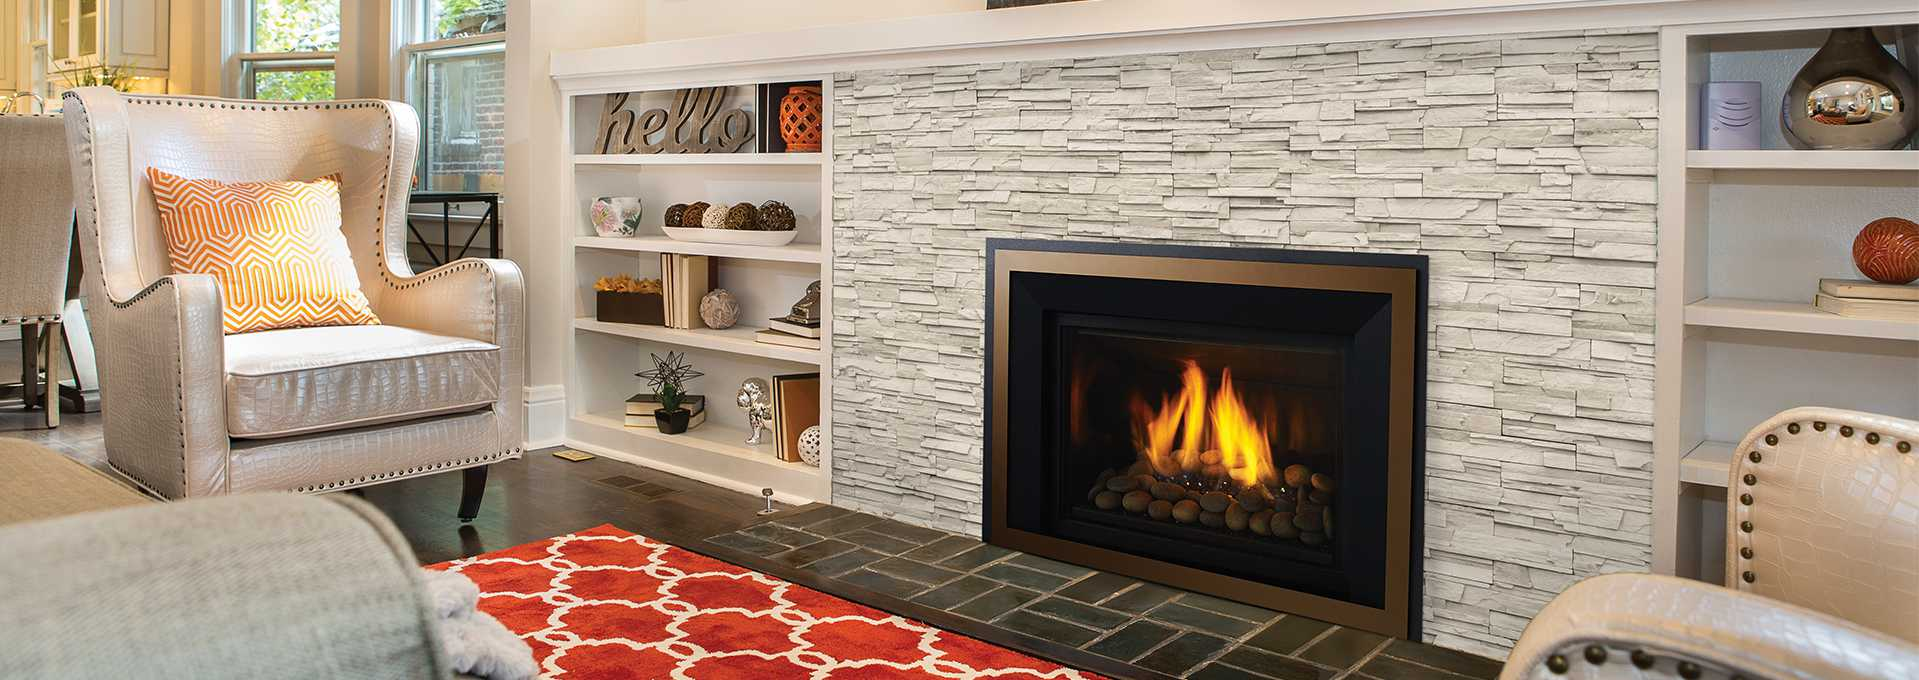 Fire Stones For Fireplace Large Gas Fireplace Insert Regency Horizon Hri6e